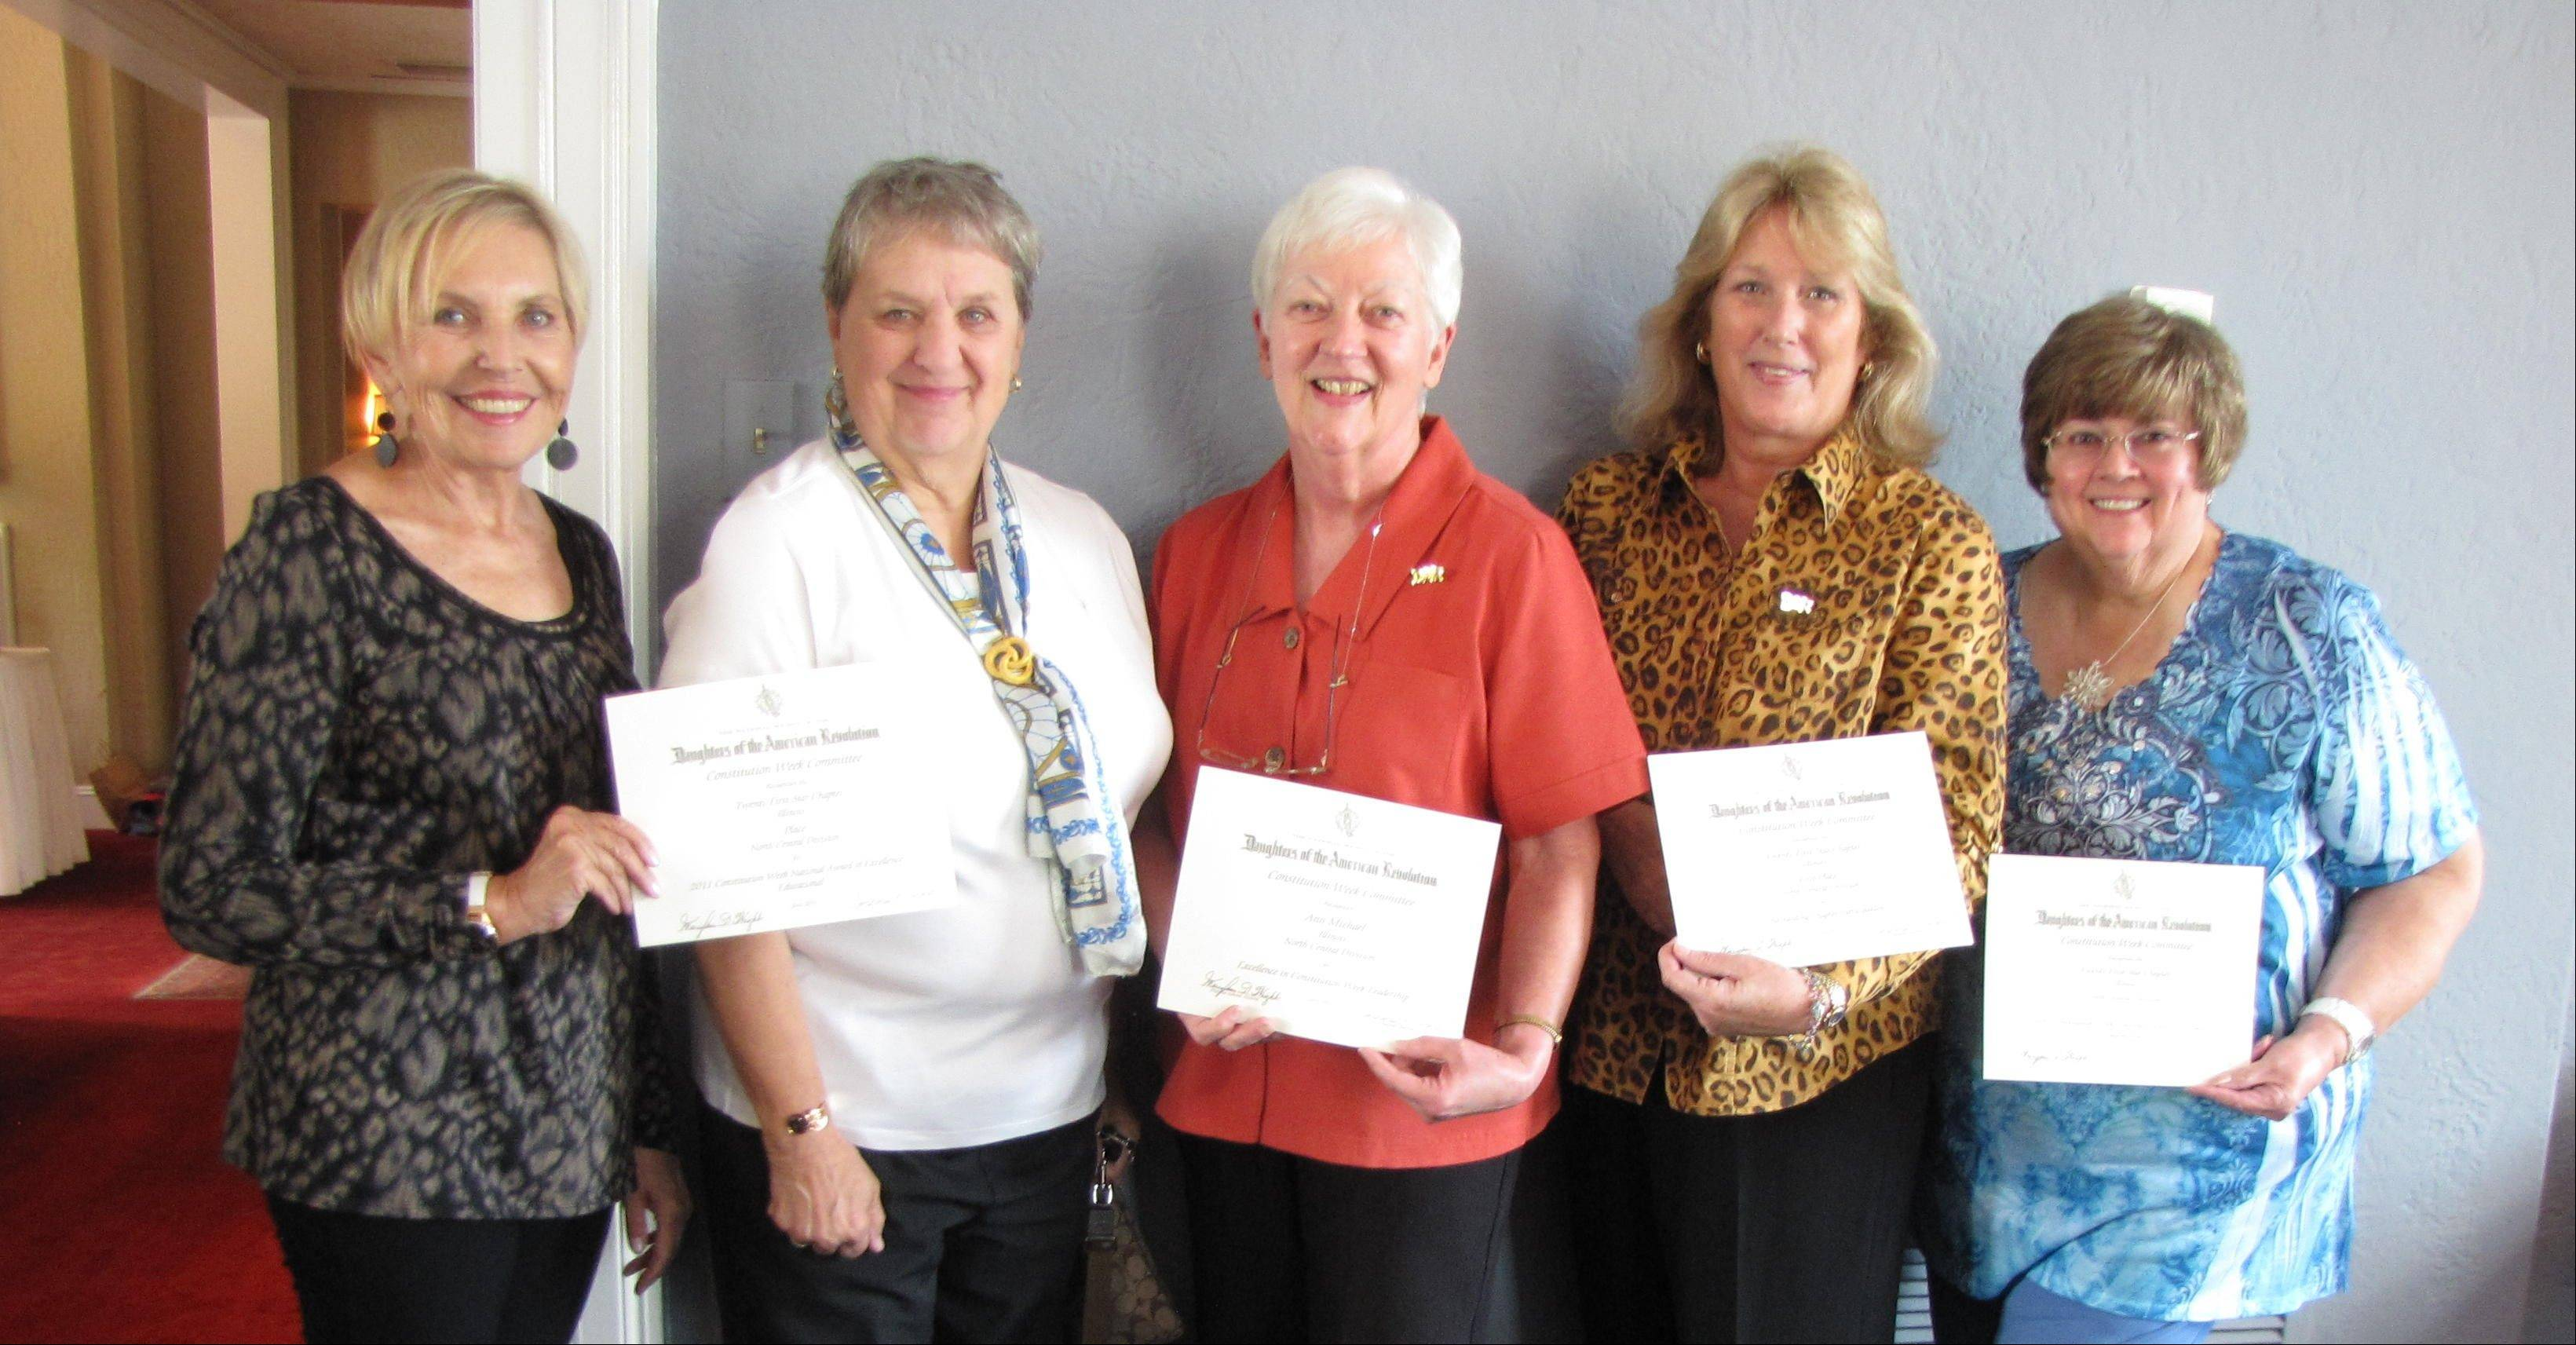 The 2011-12 Constitution Week Committee Jill Muck, Jeanette Frye, Ann Michael, Carol Gale and Barbara Hale, with the regional and national award certificates. Not pictured is Rhonda Lang.